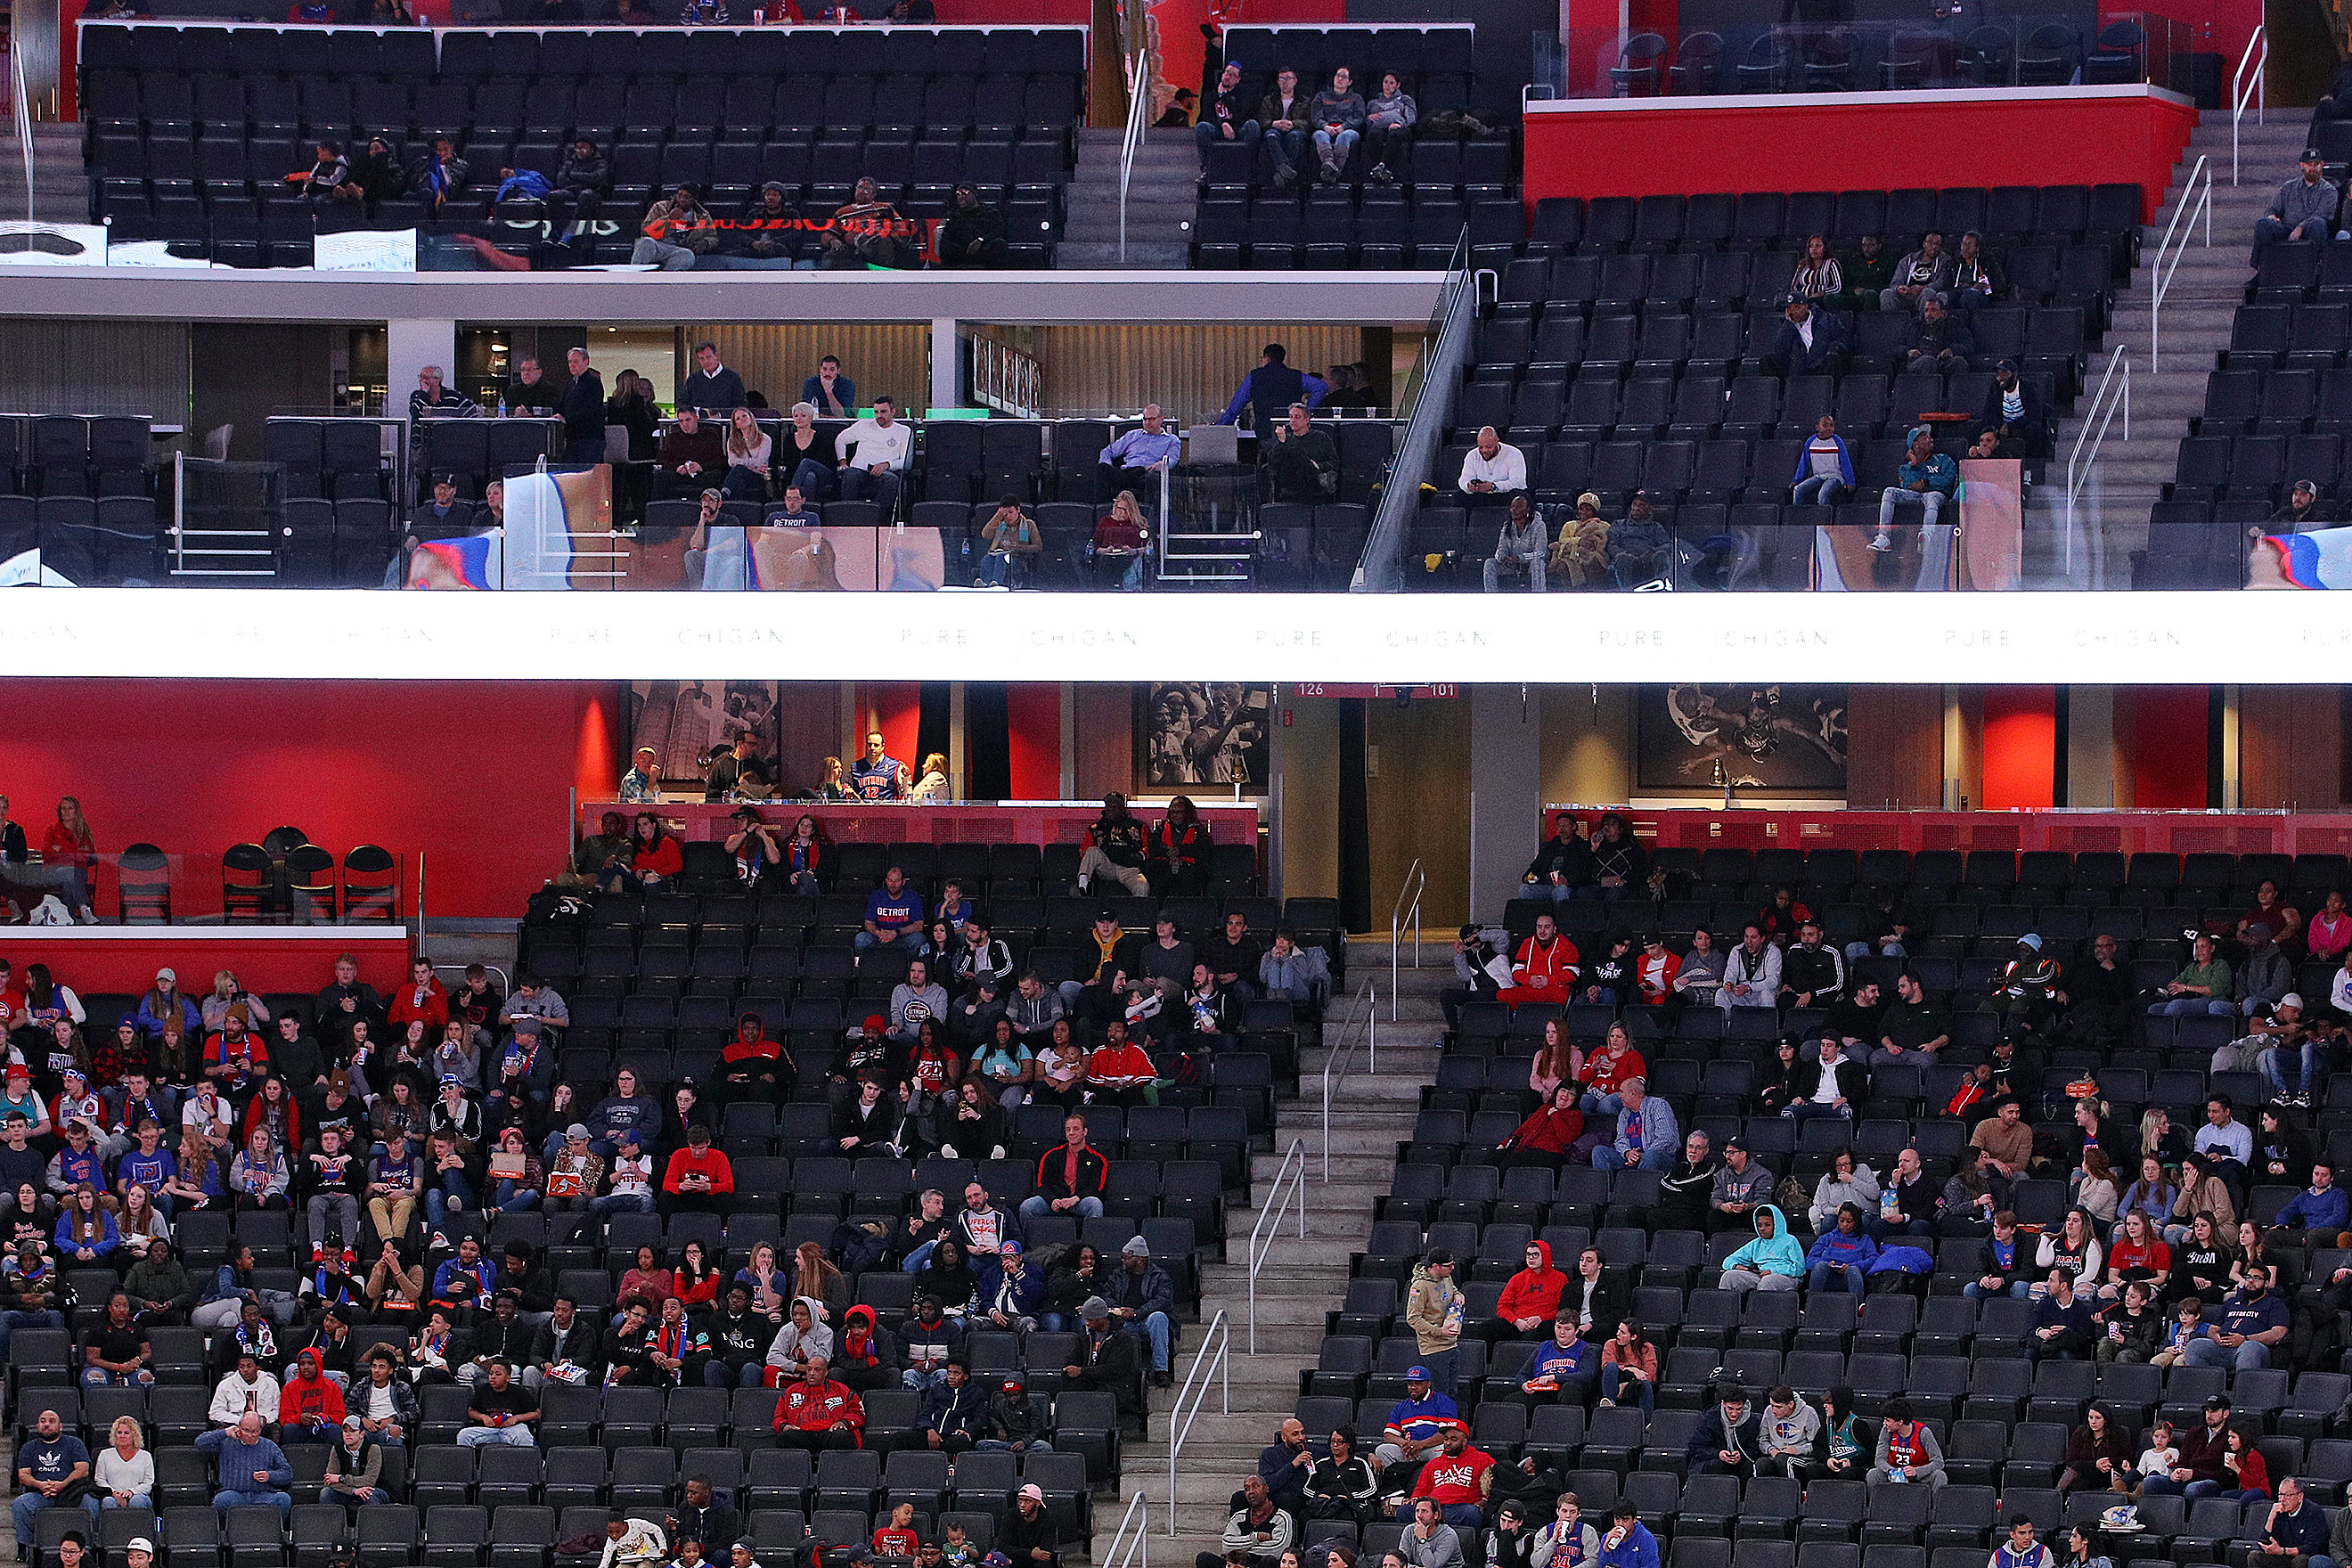 Study uses Reddit instead of TV ratings to gauge fan interest for Pistons, other NBA teams